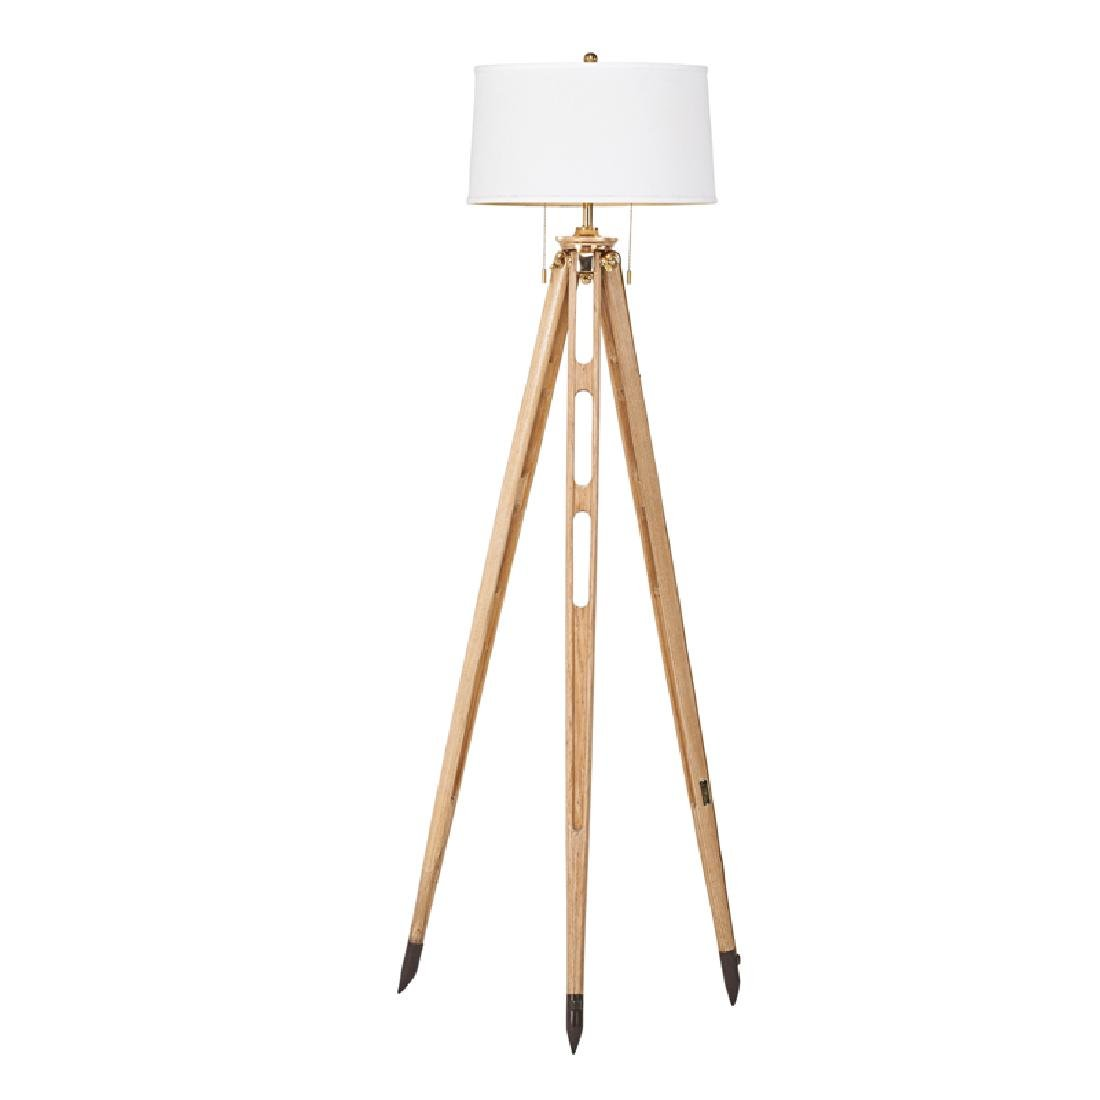 ARCHITECHTURAL FLOOR LAMP